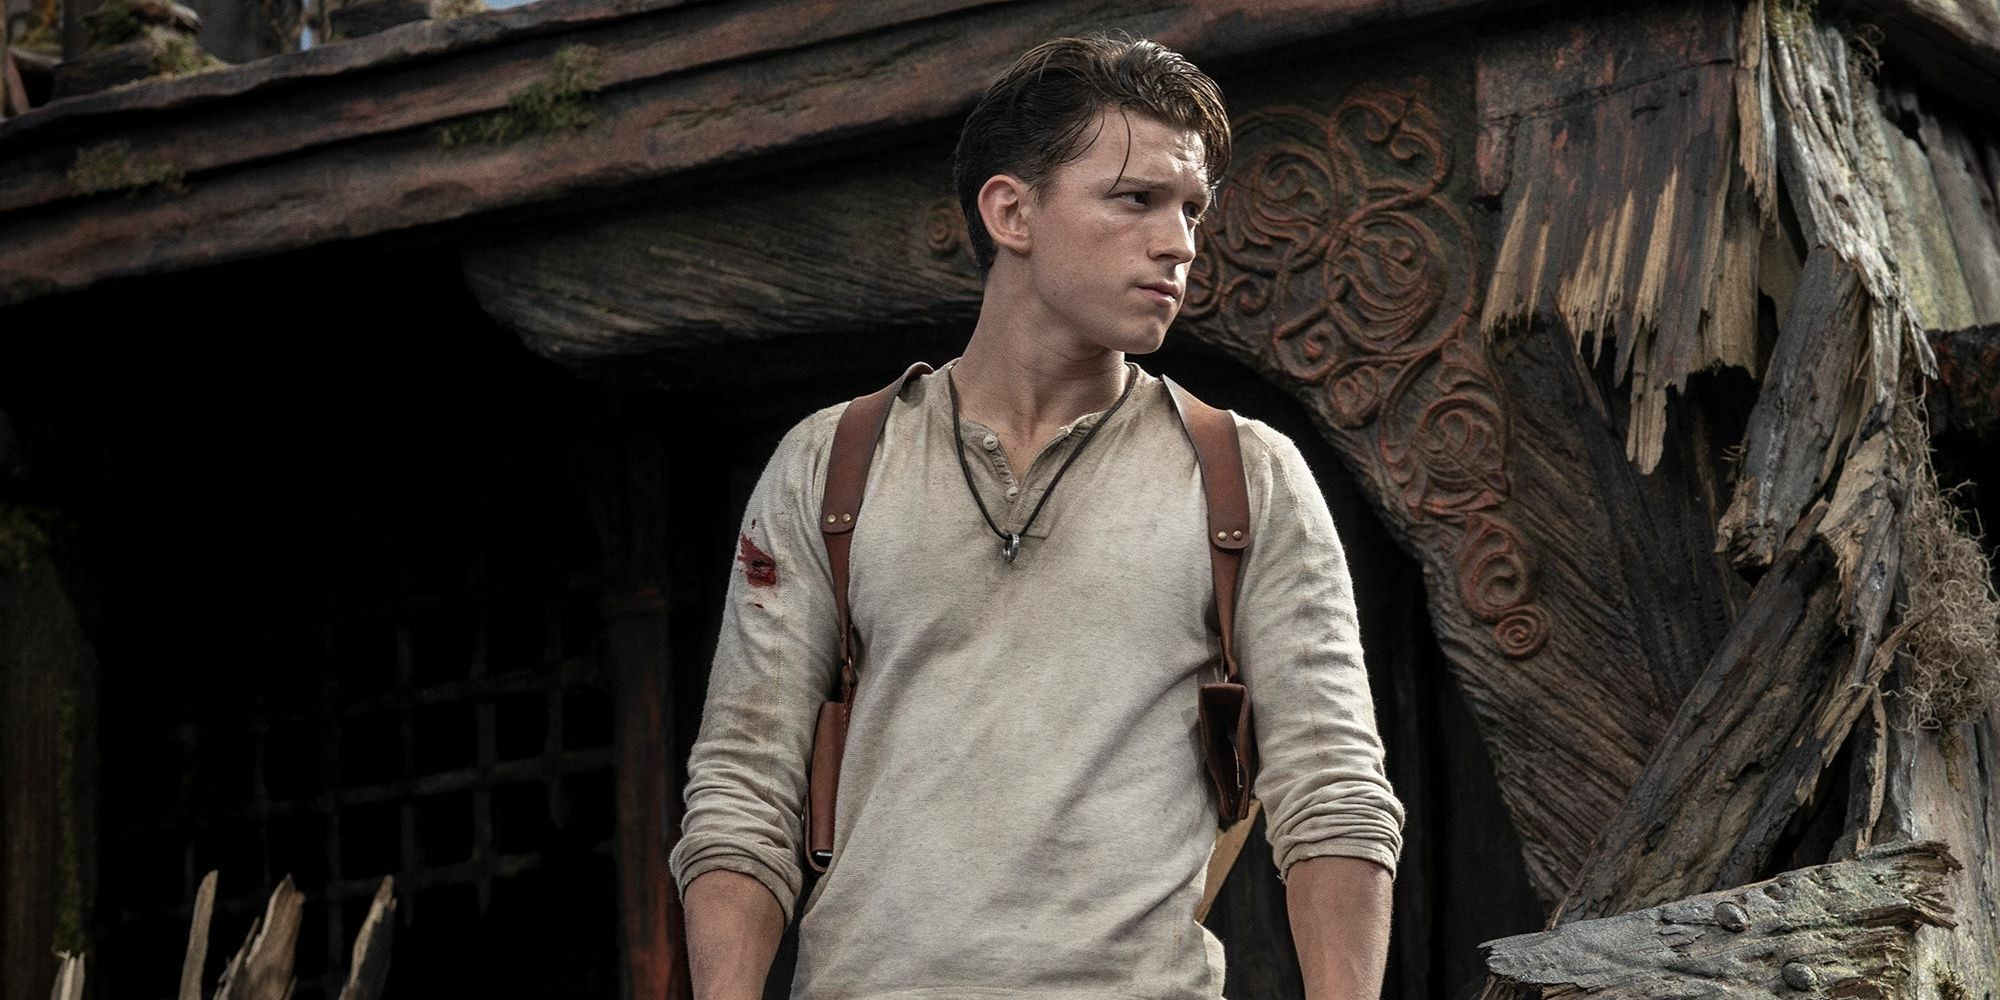 Uncharted Movie Starring Tom Holland Release Date Delayed To 2022